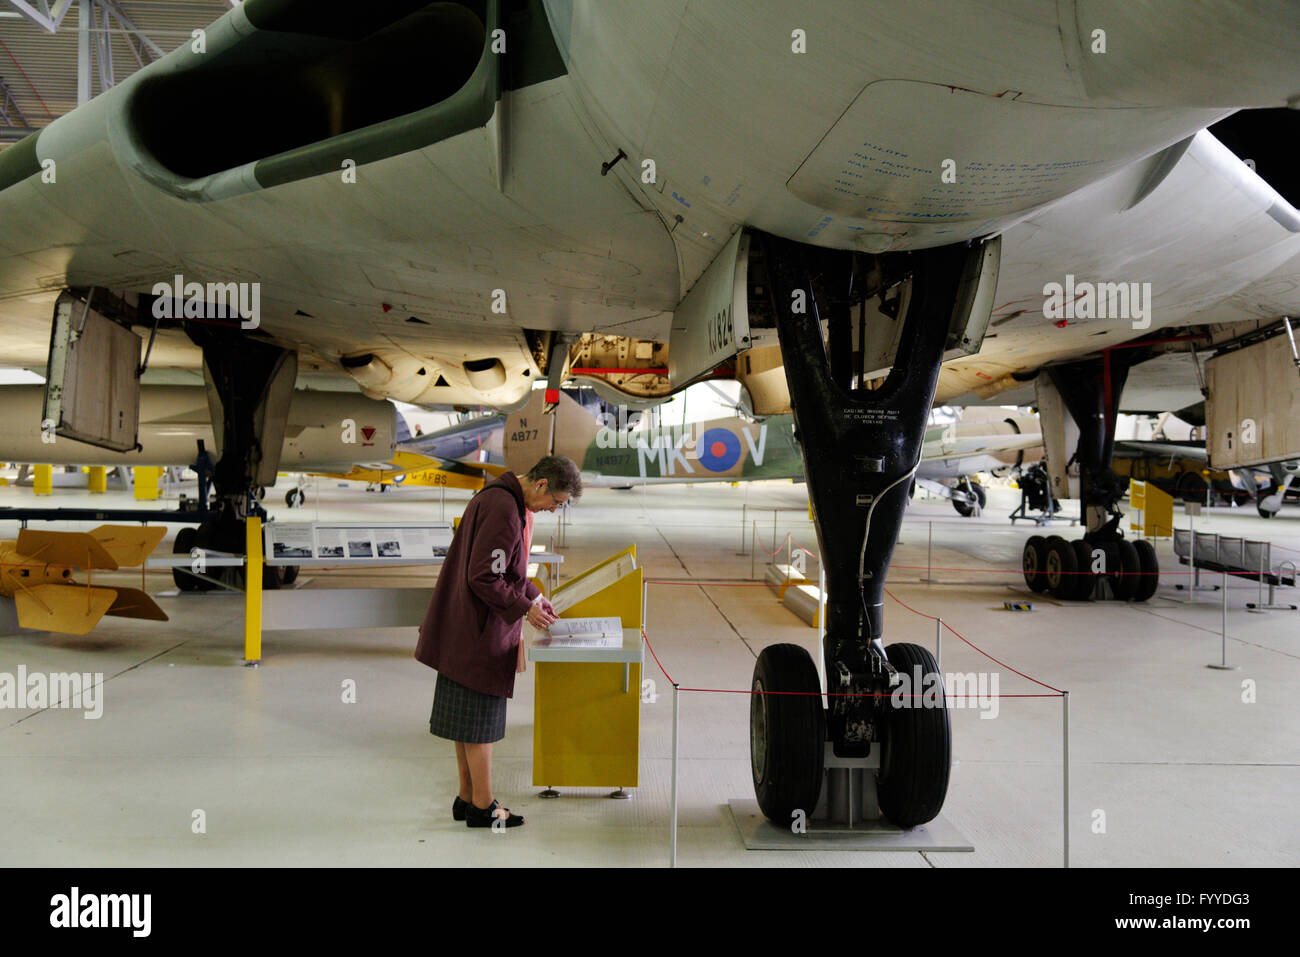 An older lady reading about, and dwarfed by, the Avro Vulcan bomber at Duxford Air Museum, England - Stock Image